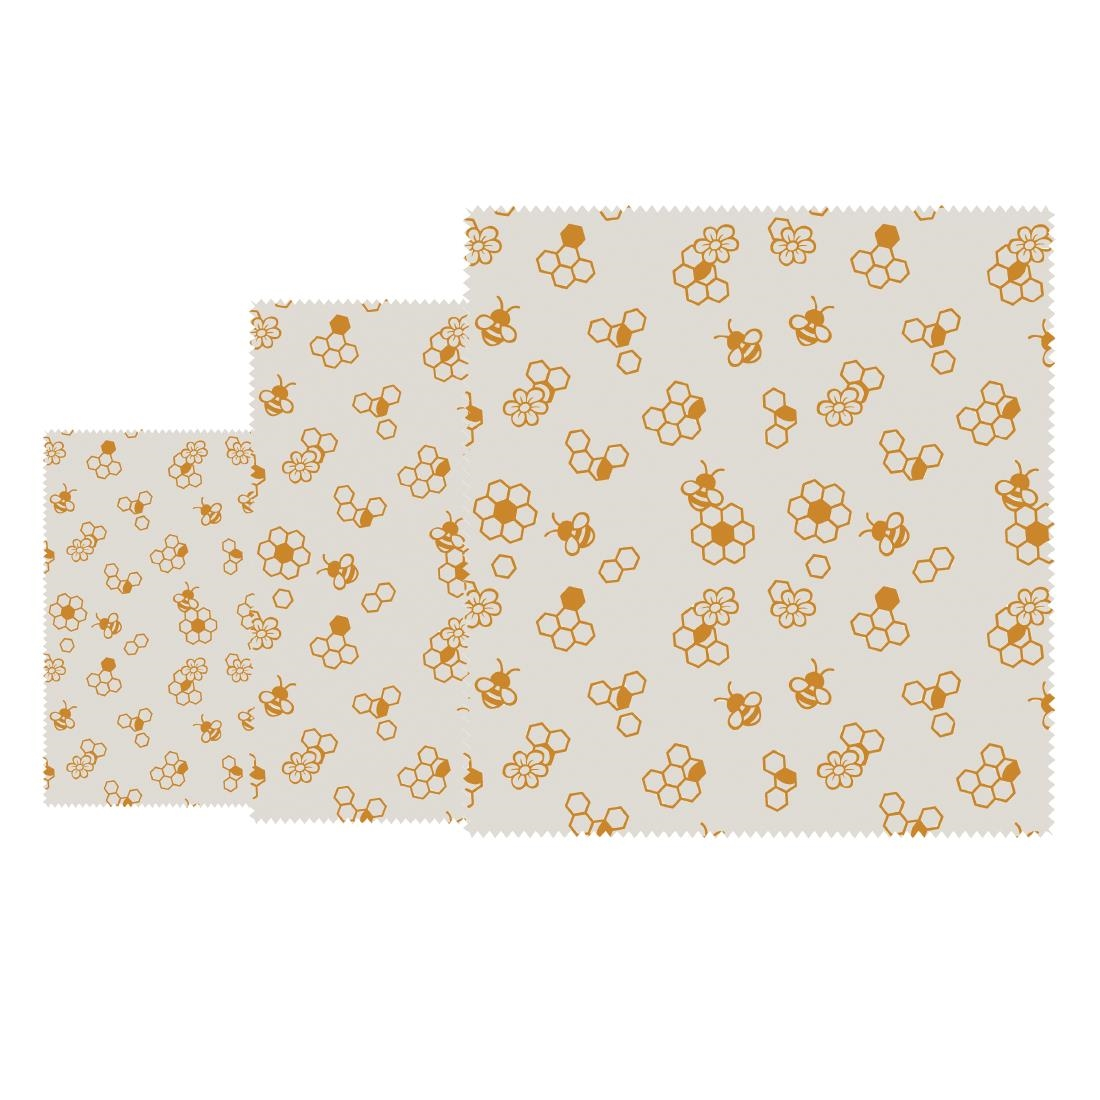 Image of Bees Wax Wrap Honeycomb Assorted (Pack of 3) Pack of 3